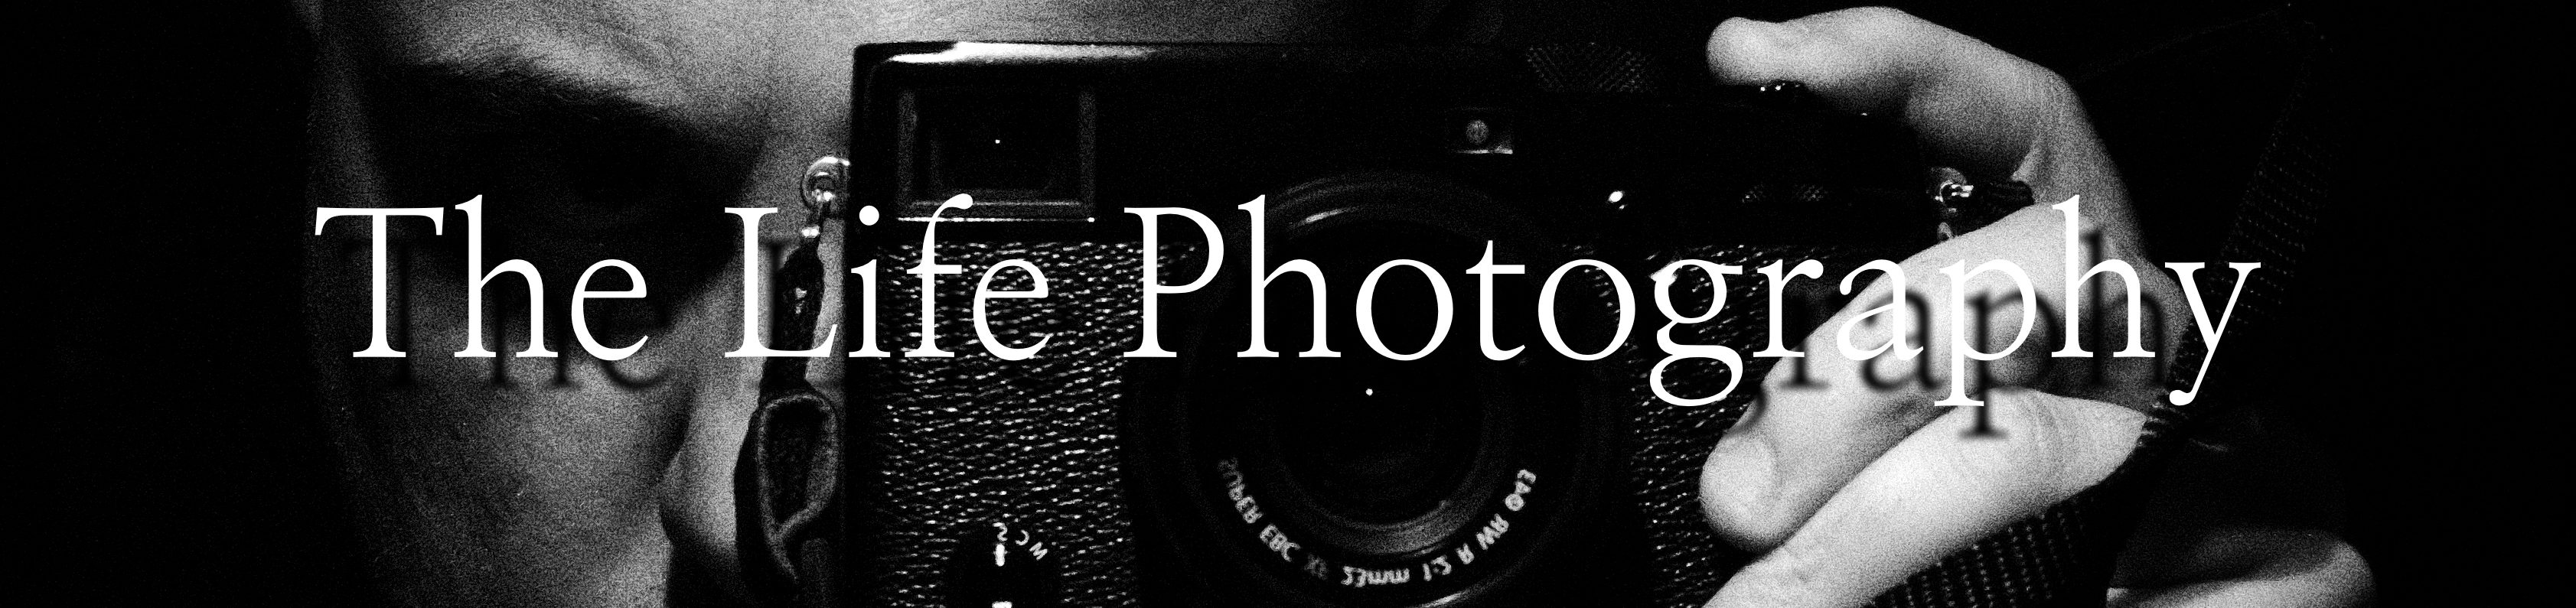 The Life Photography Blog